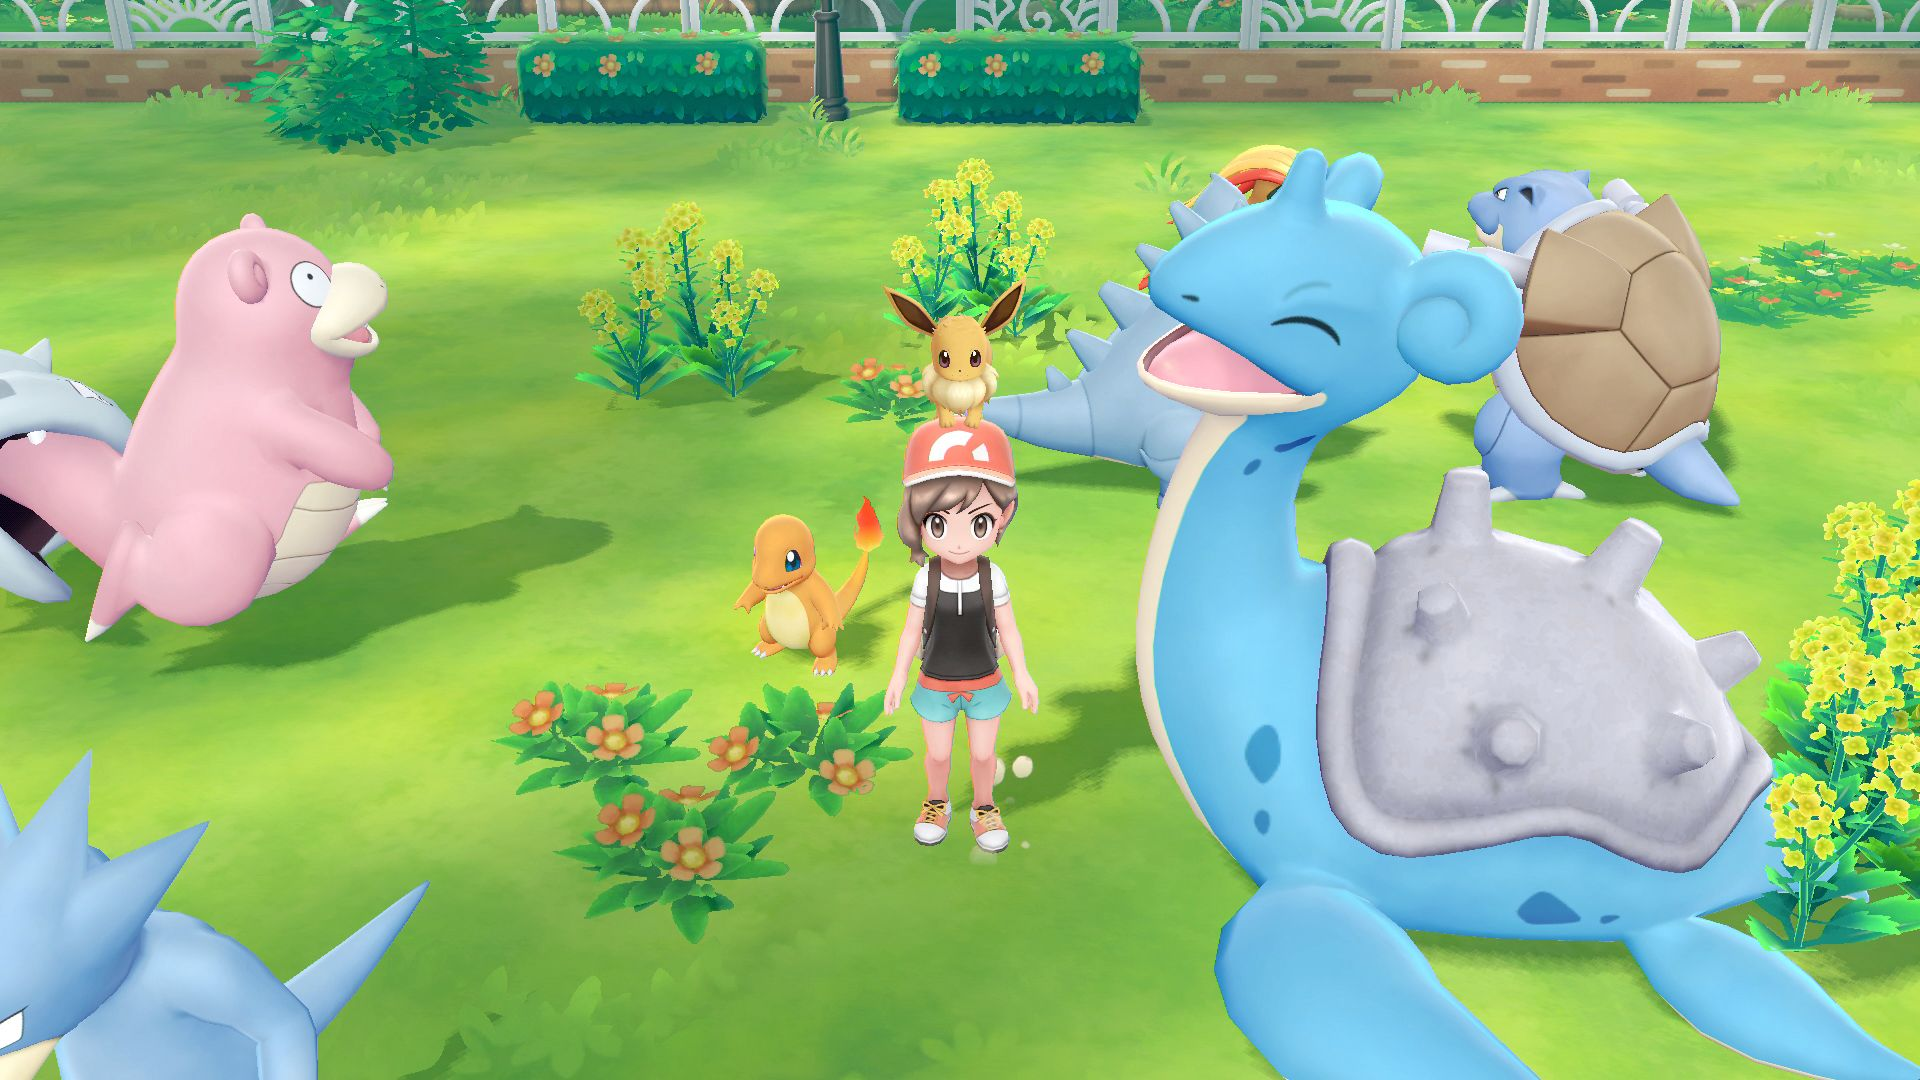 13 essential Pokemon Let's Go tips to know before you play | GamesRadar+